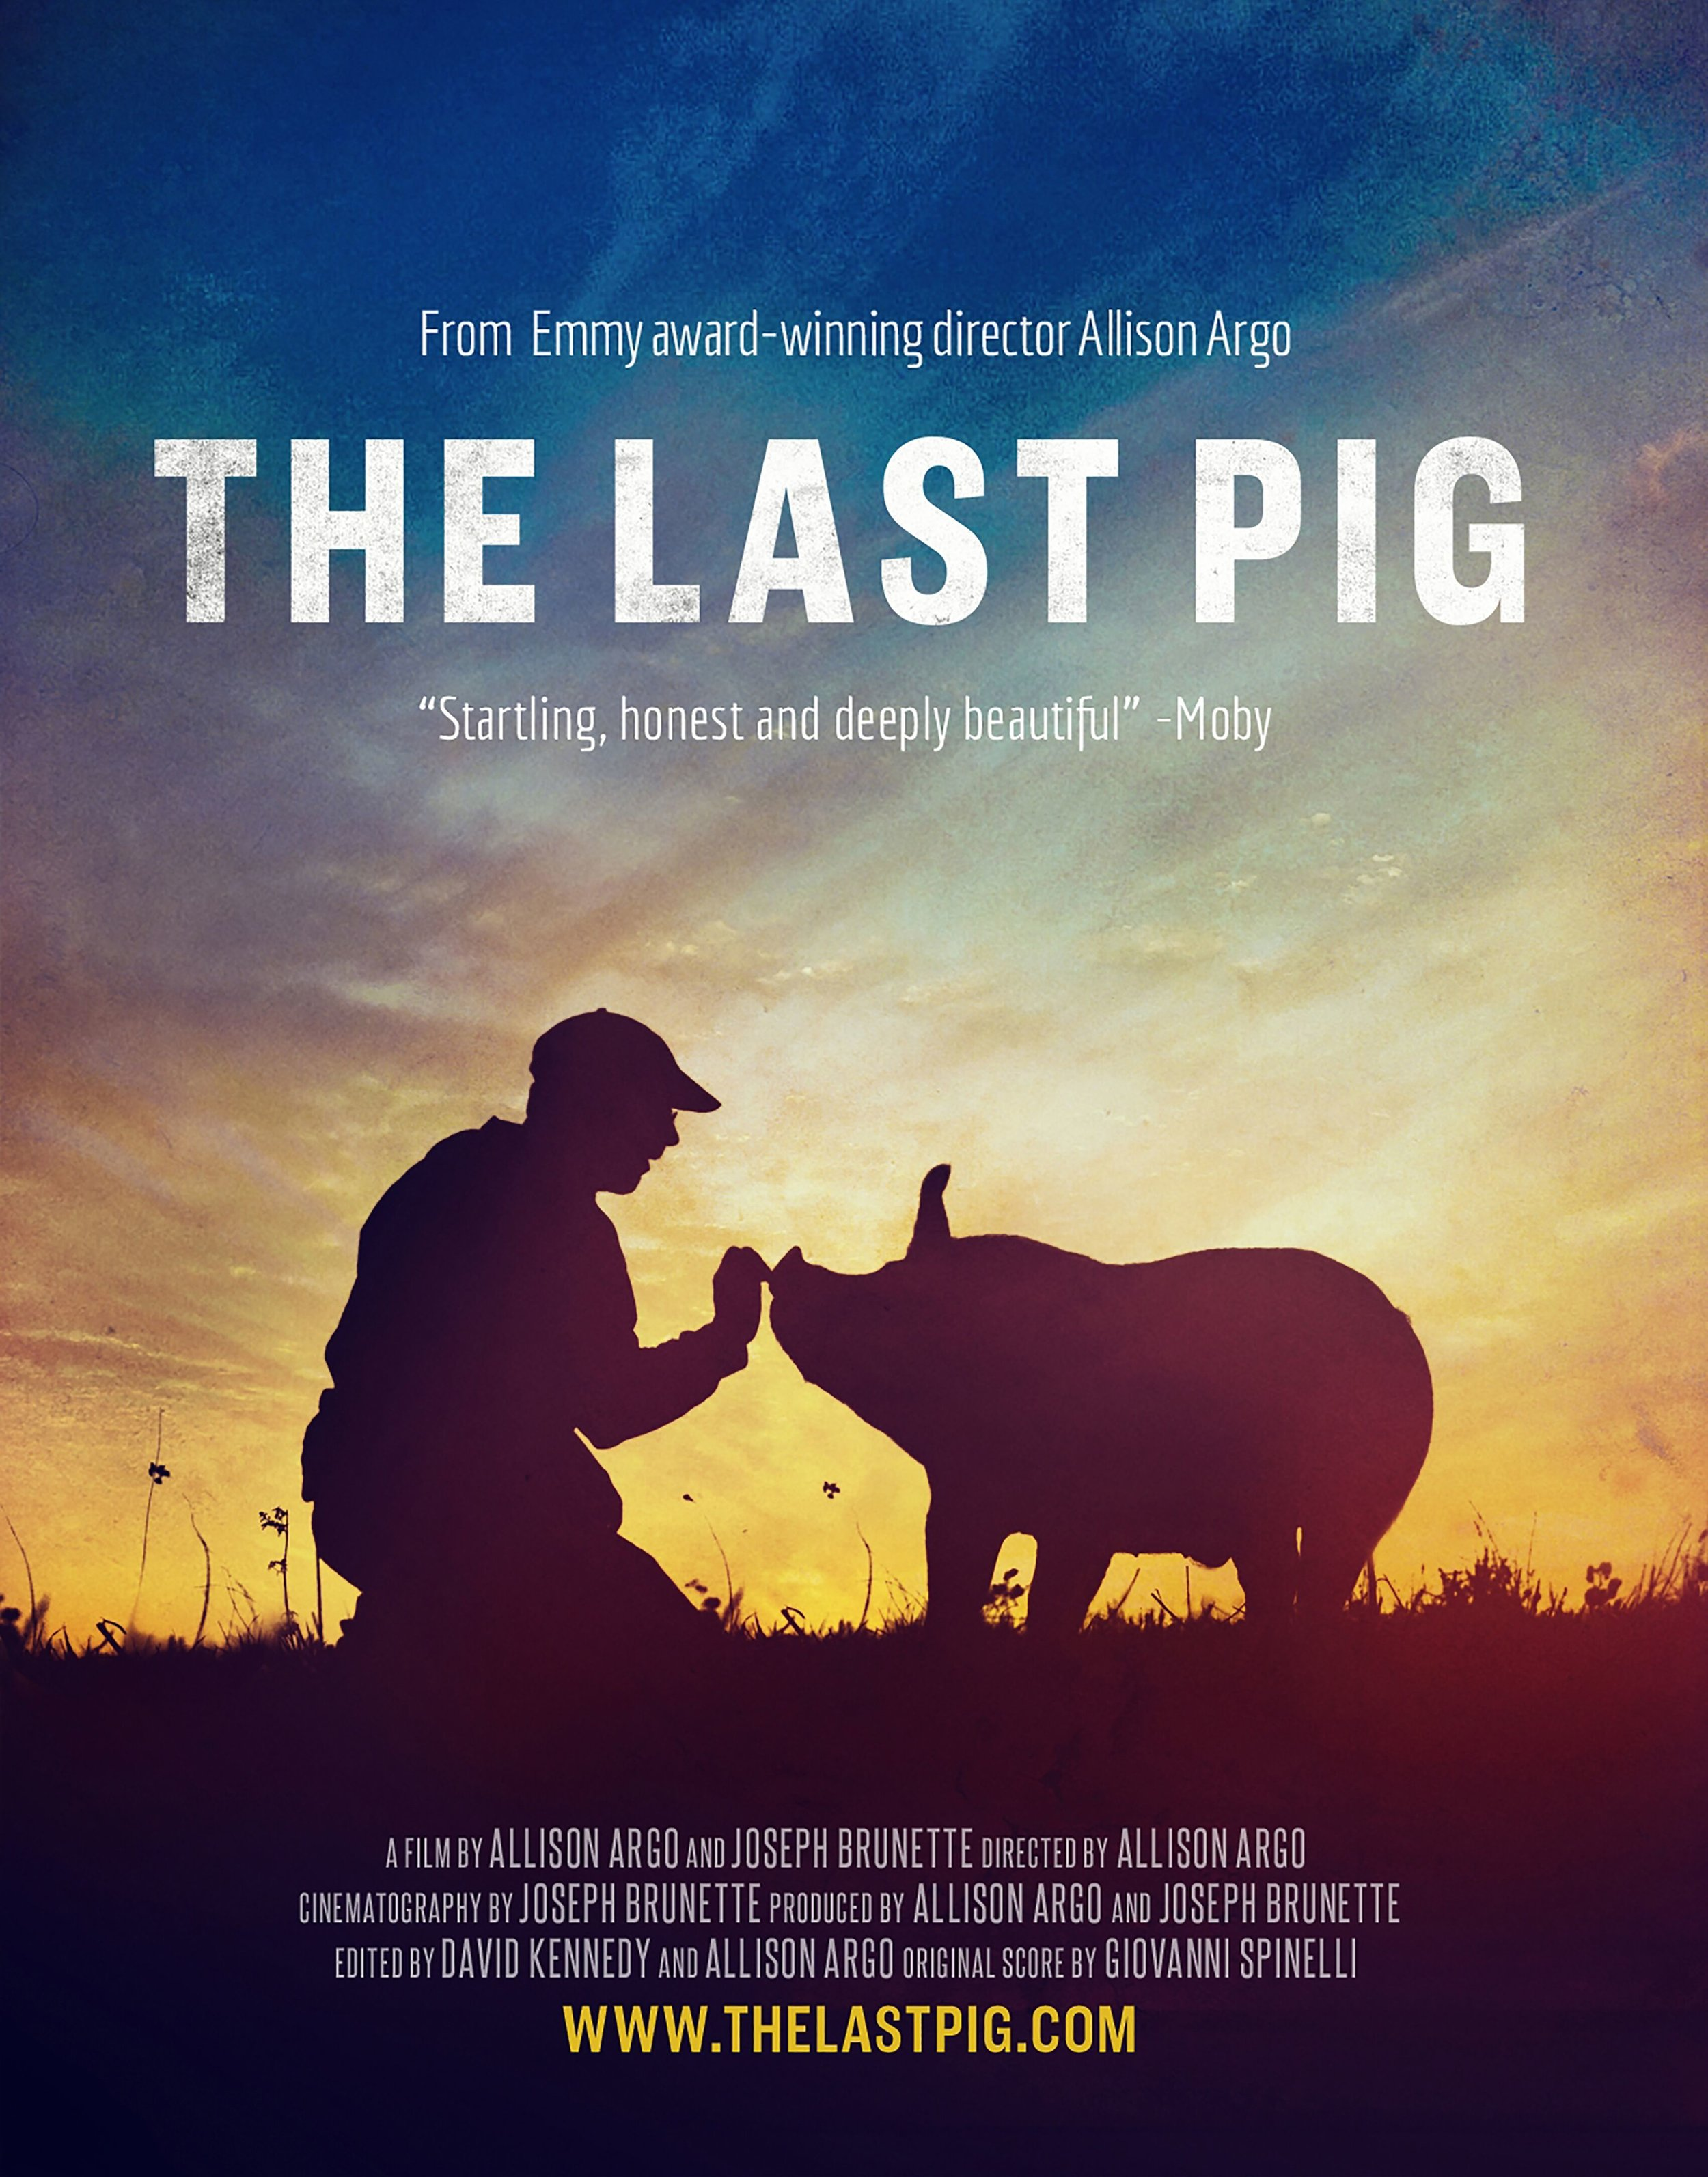 THE LAST PIG: 11 AM - Through this personal journey, THE LAST PIG raises crucial questions about equality, the value of compassion and the sanctity of life. Comis' soul-baring narrative carries us through his final year of farming pigs, the struggle to reinvent his life, and the ghosts that will haunt him forever.Run time: 53 minutes